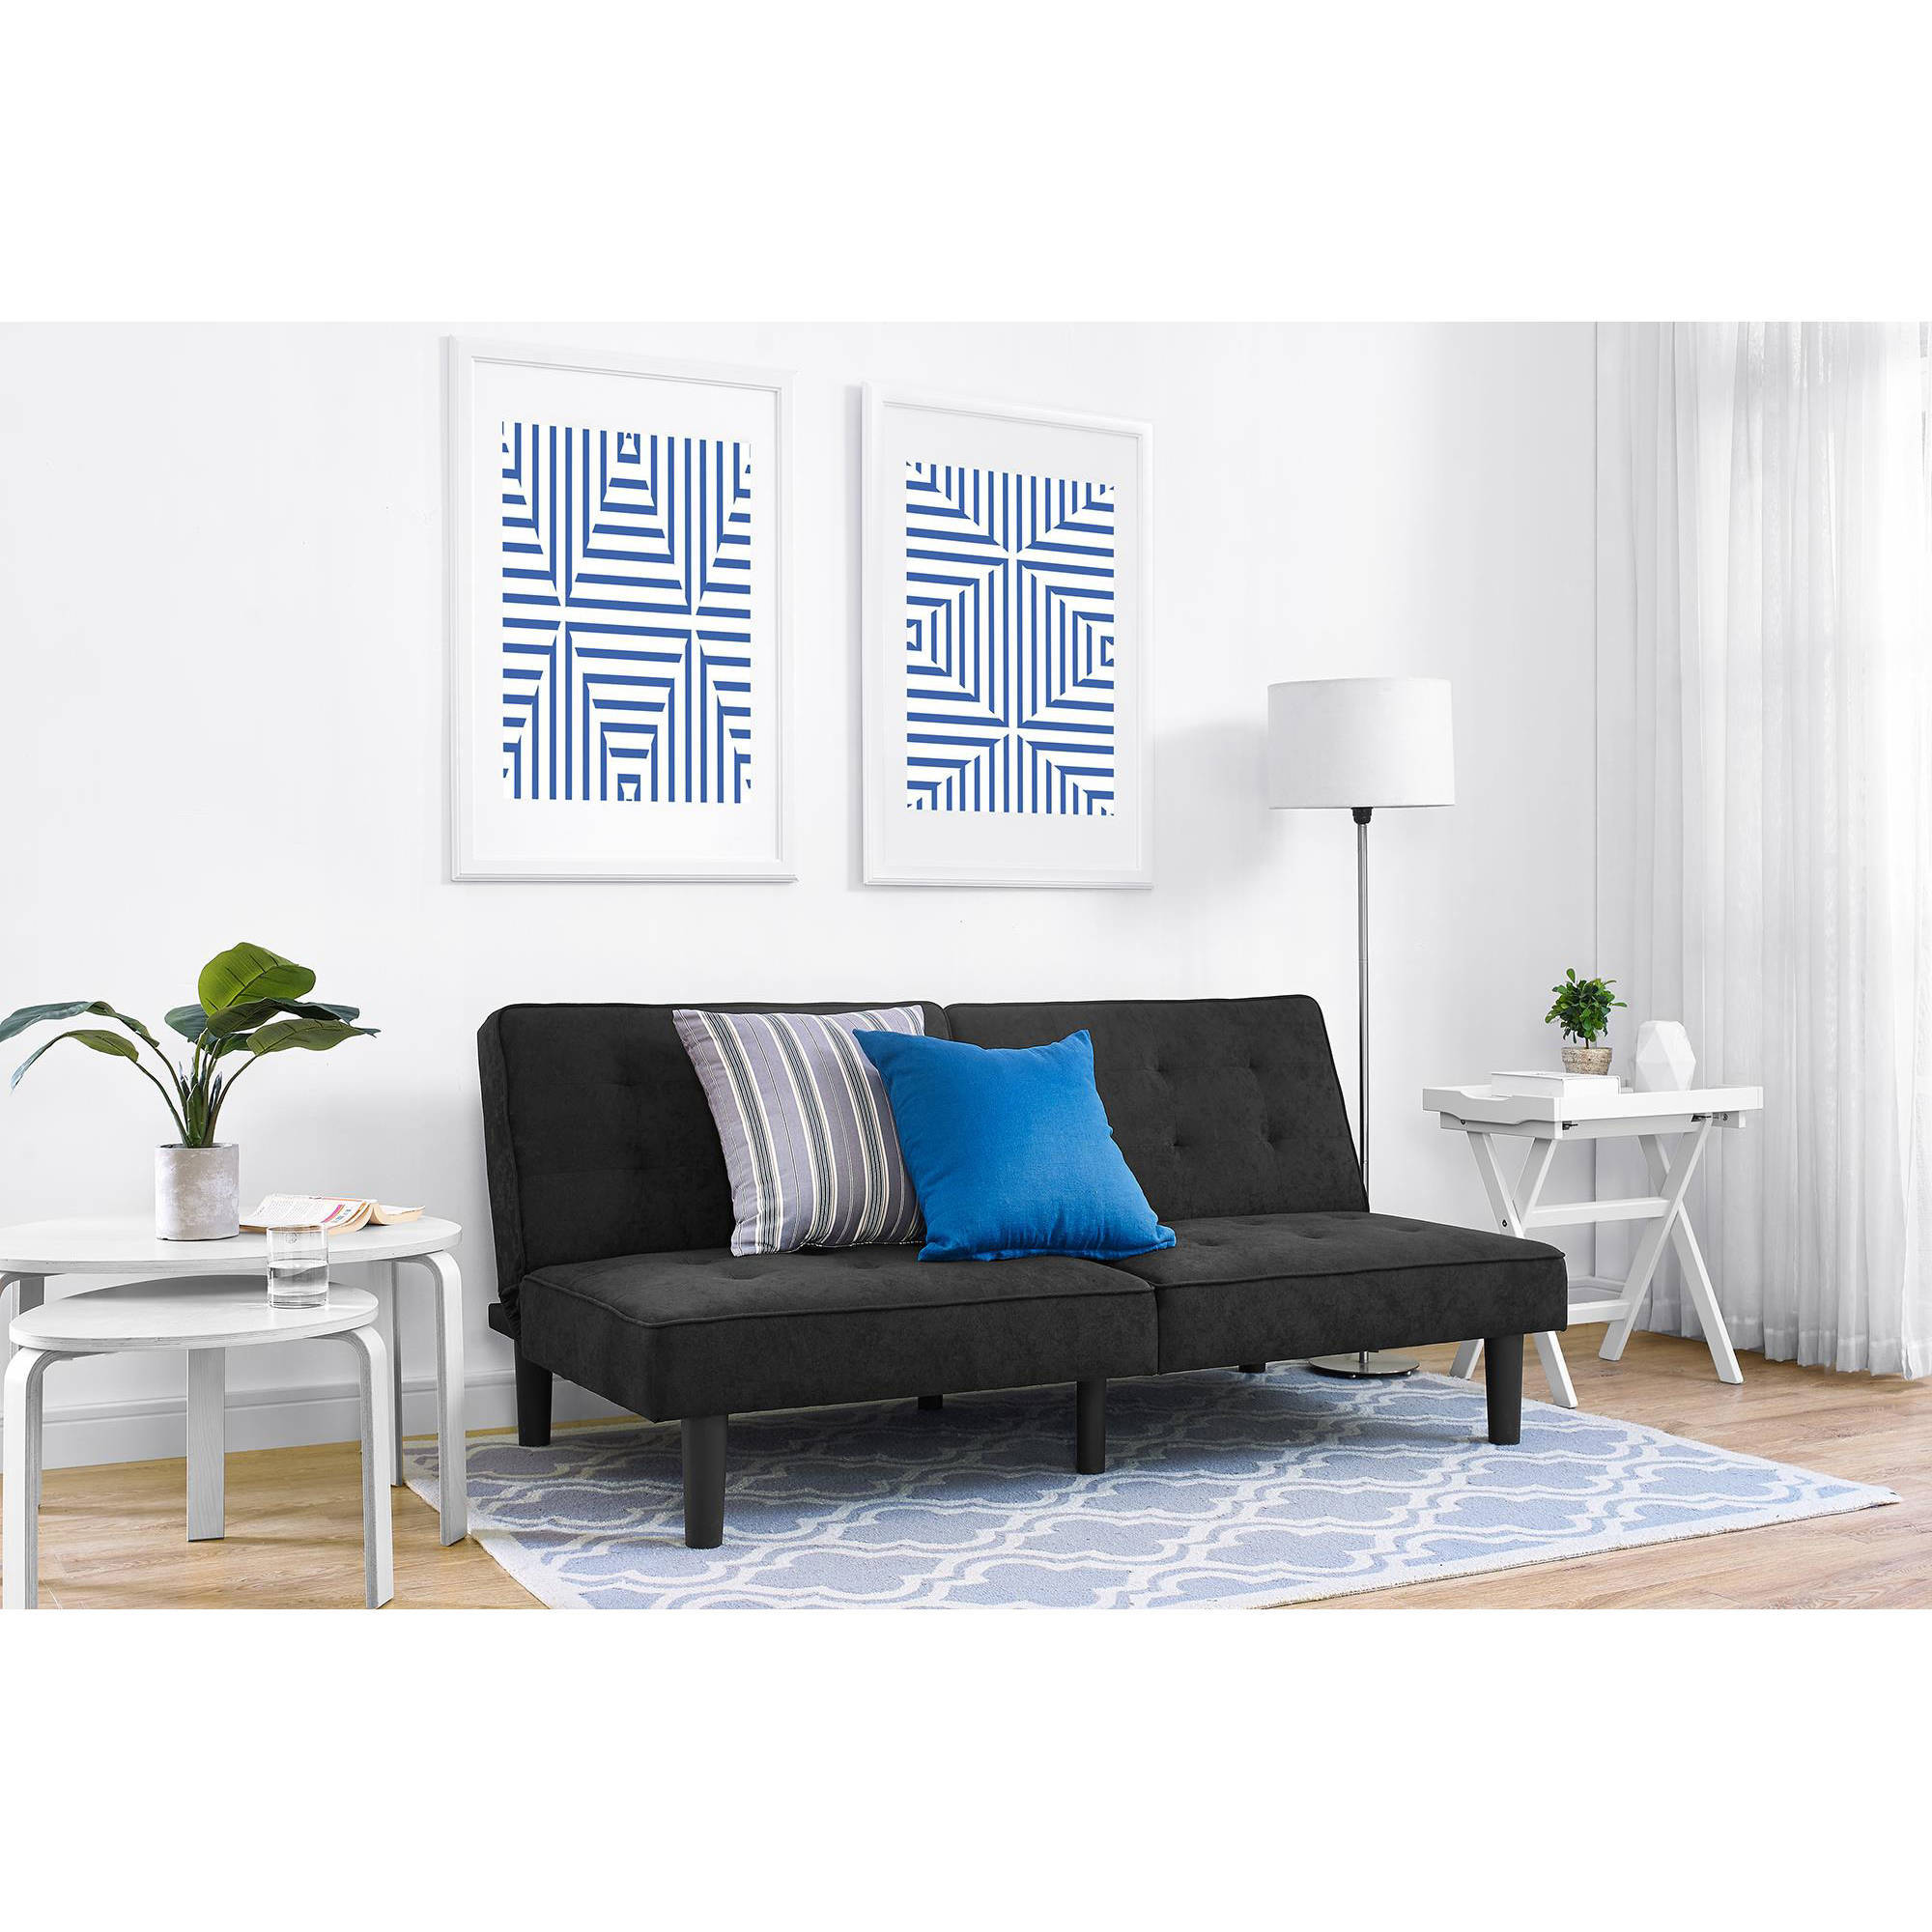 Mainstays Arlo Futon Multiple Colors Walmartcom